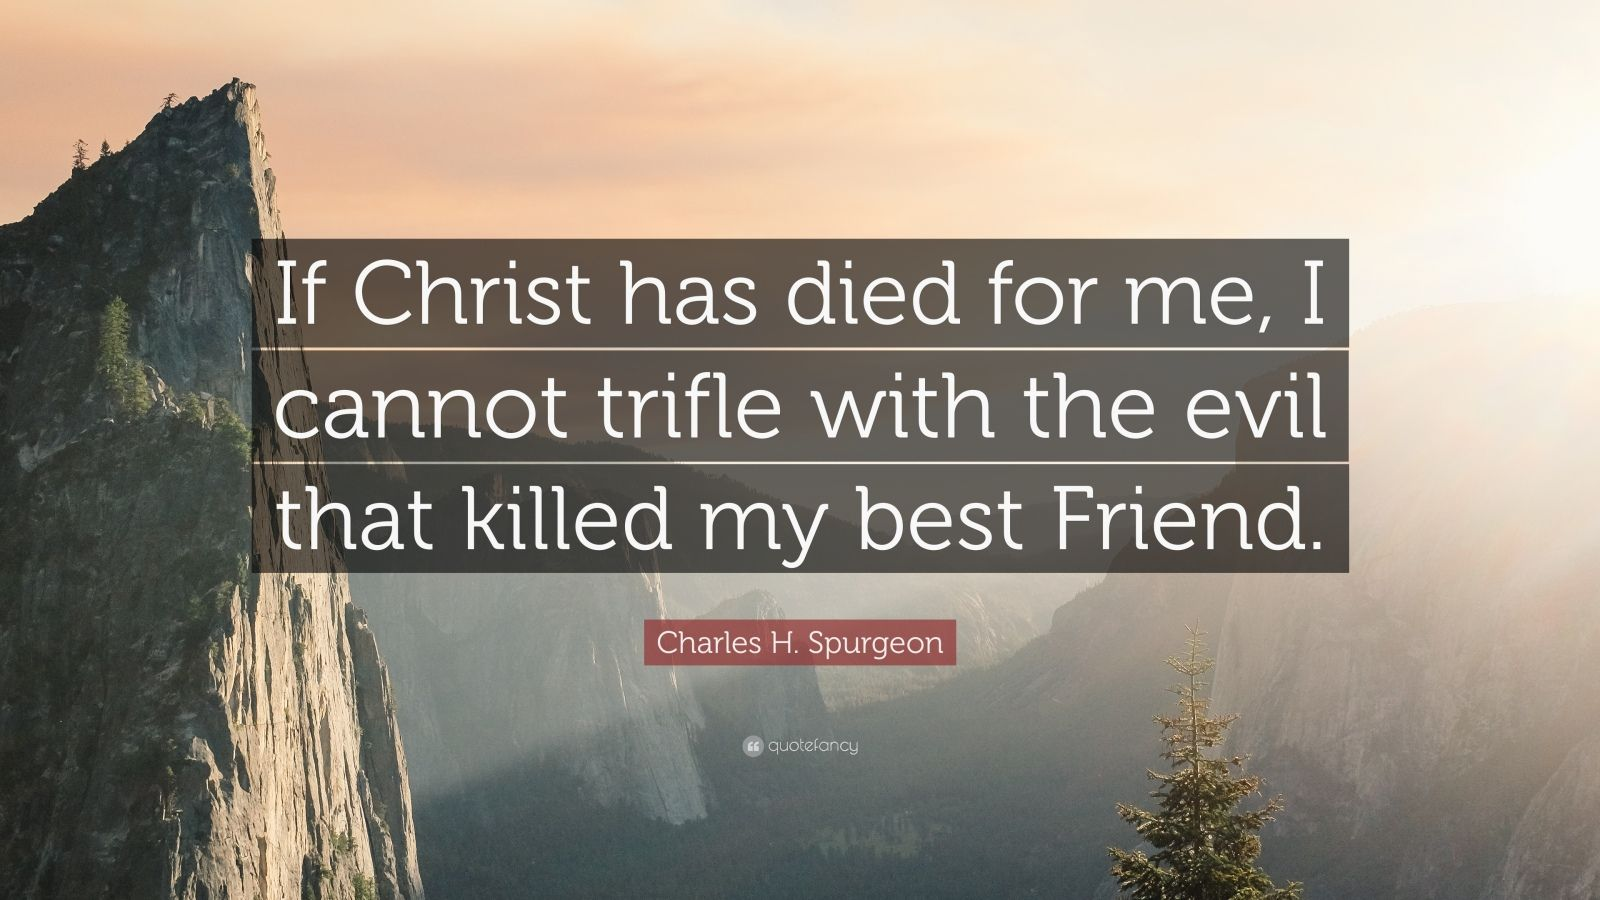 Nick Vujicic Quotes Wallpaper Charles H Spurgeon Quote If Christ Has Died For Me I